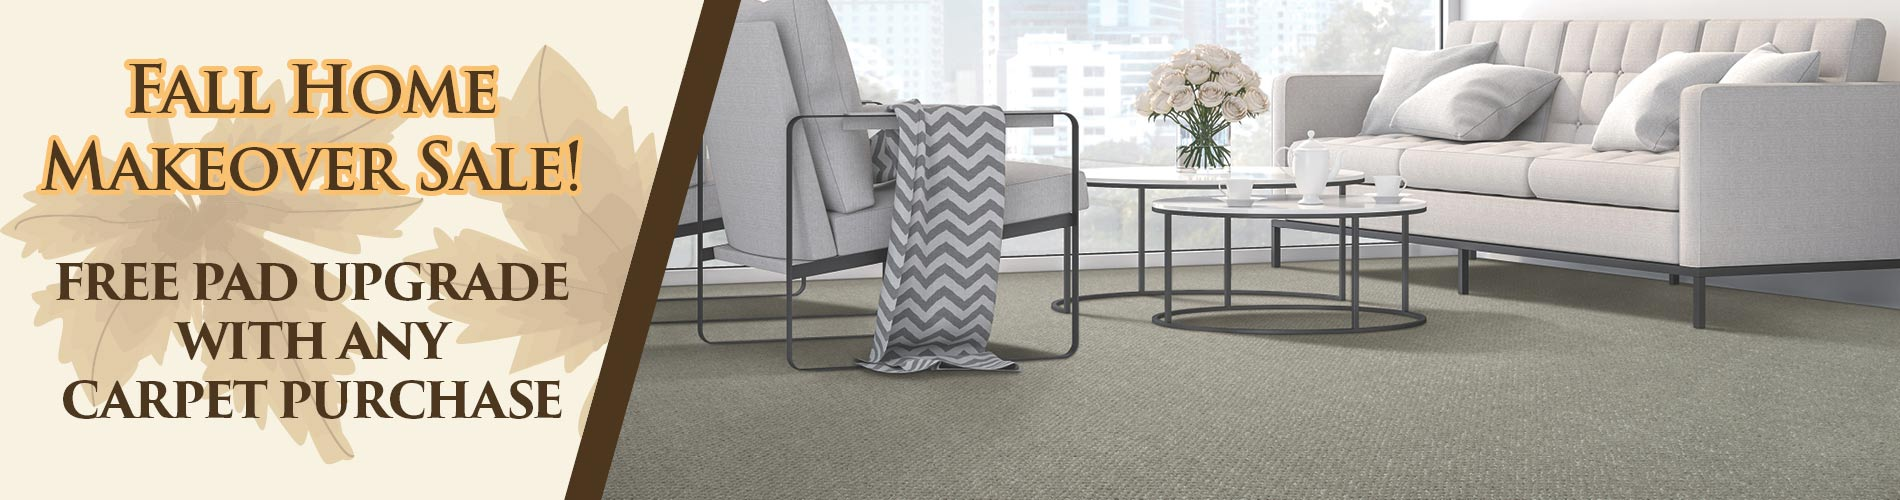 Get a free pad upgrade with any carpet purchase during our Fall Home Makeover Sale